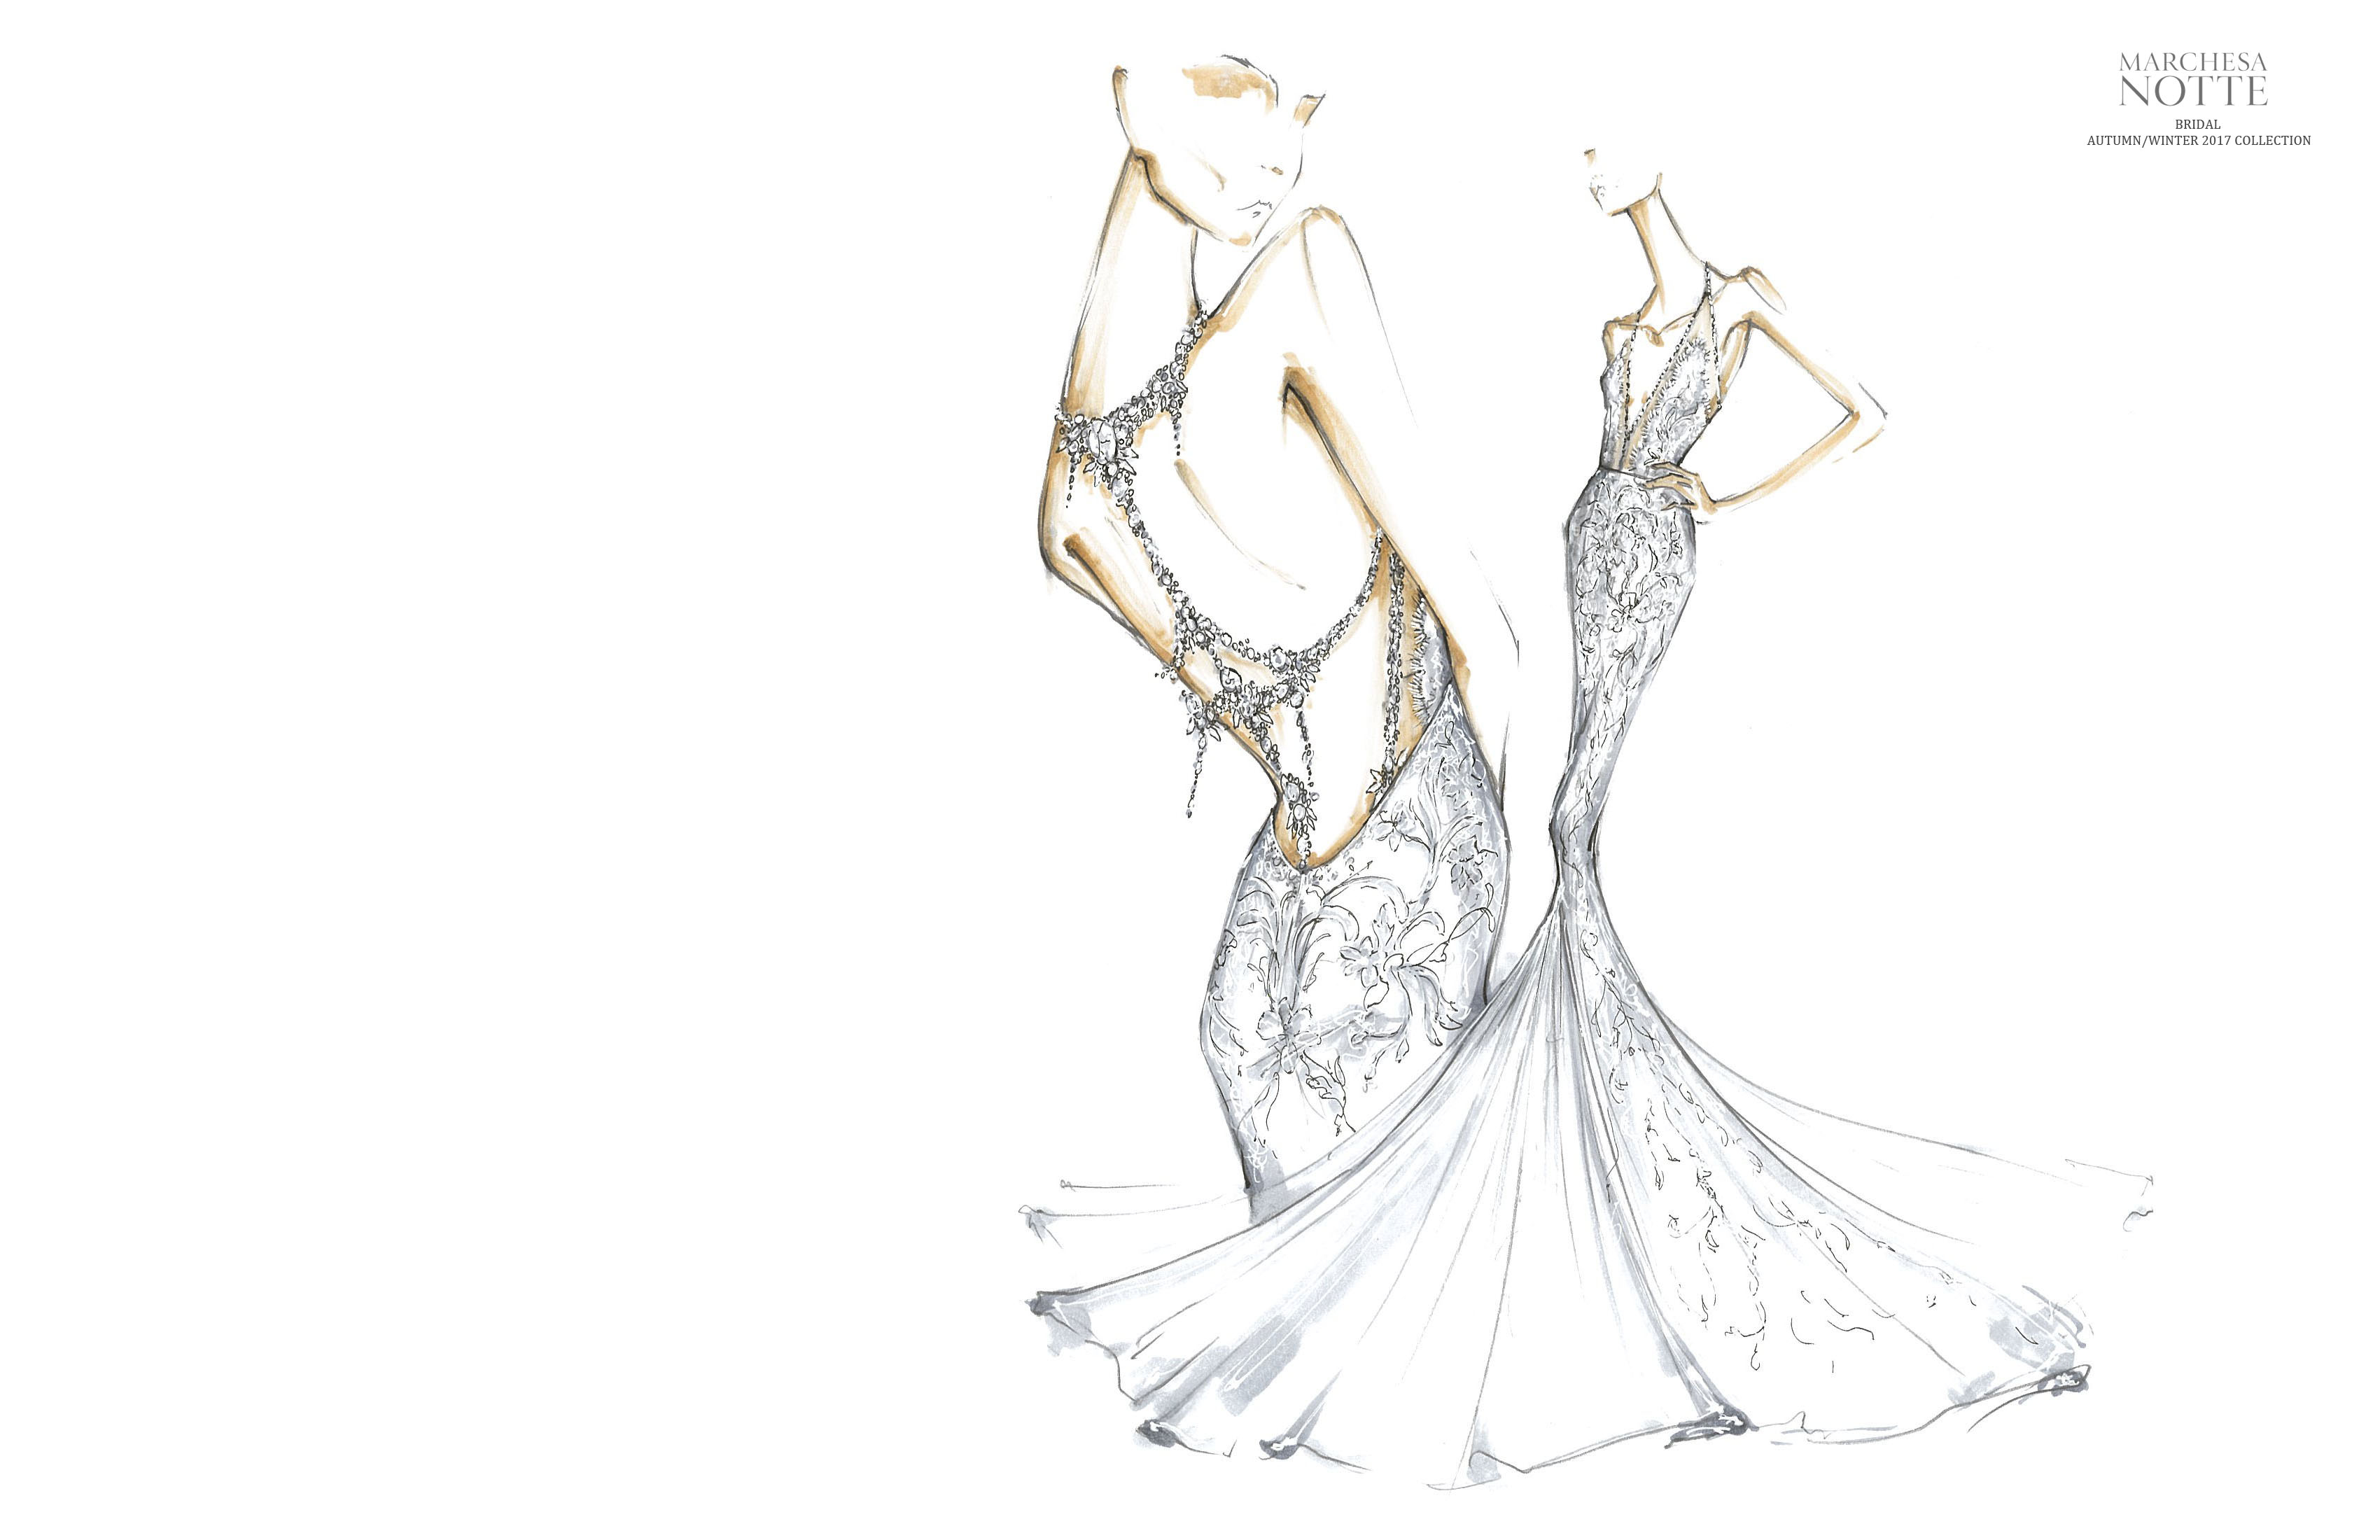 A sketch from the fall 2017 Marchesa Notte bridal collection.